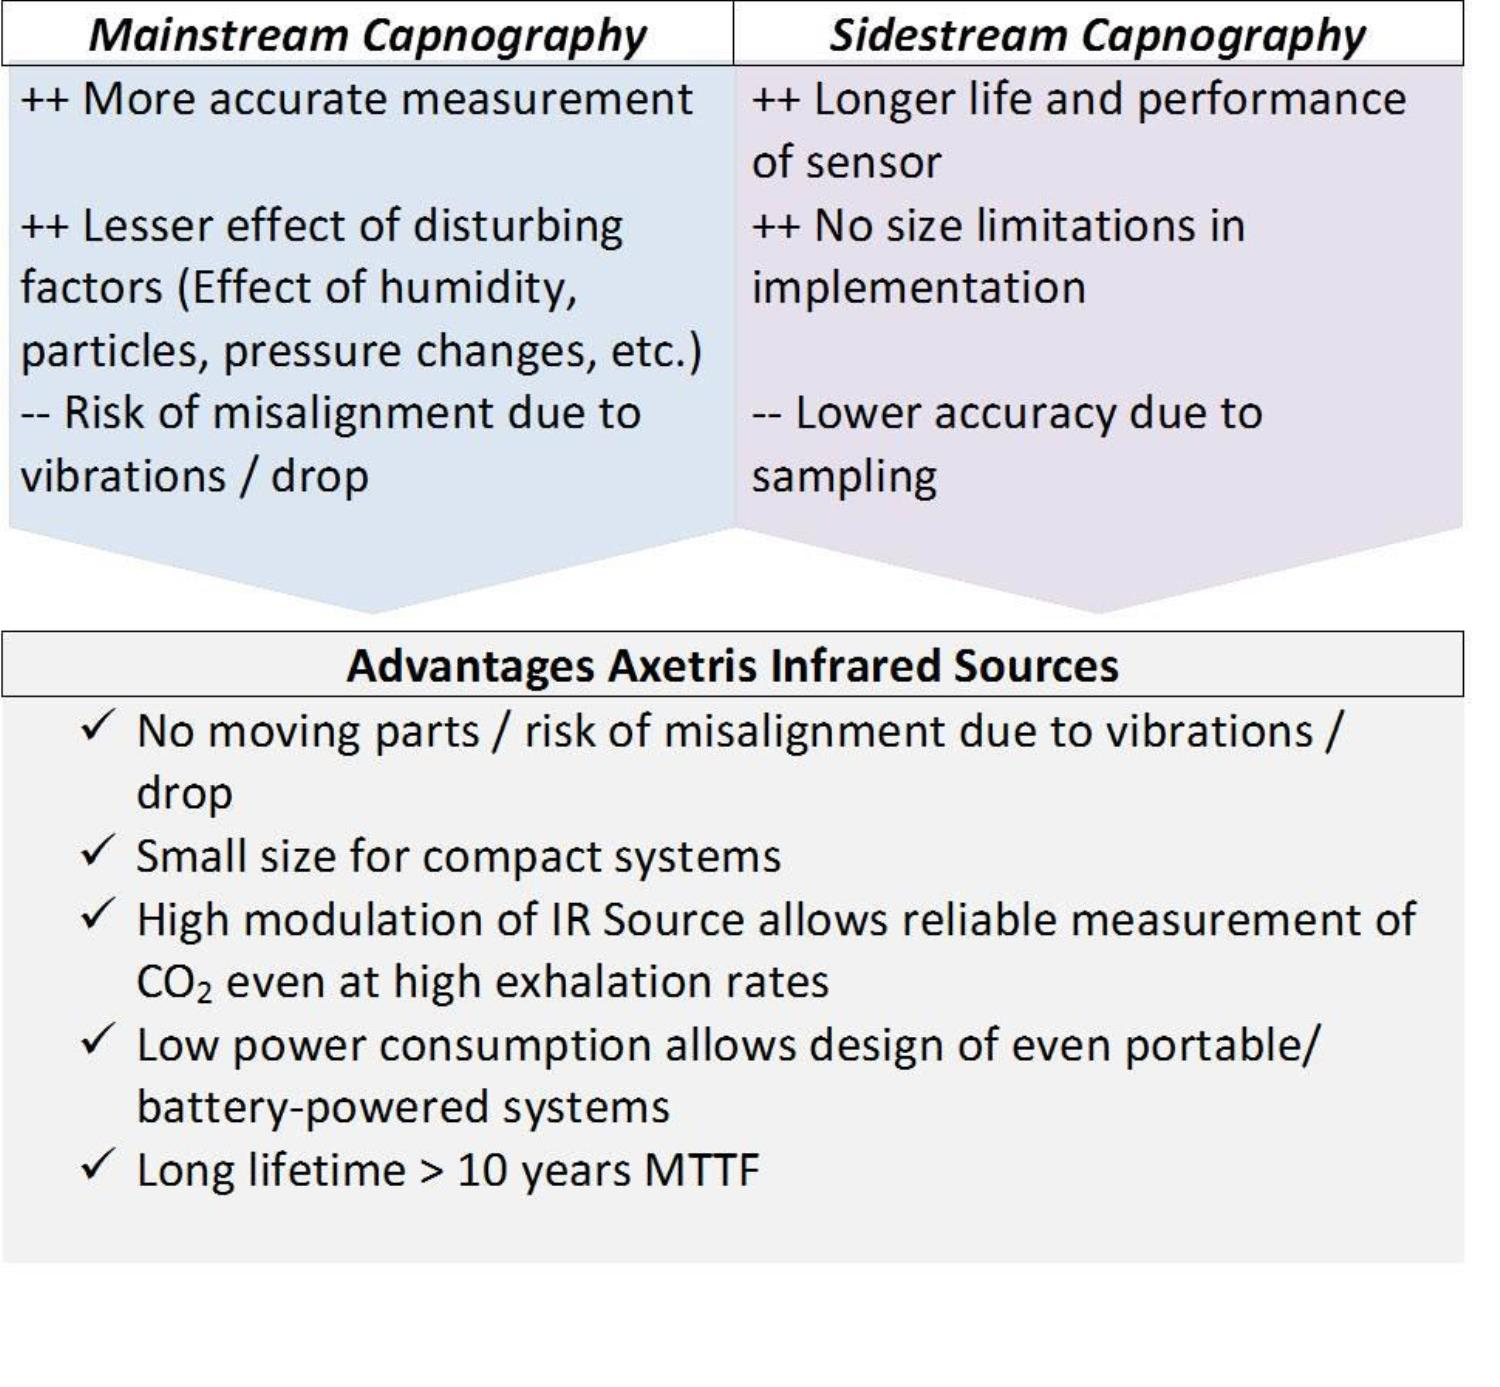 1507_AXAG_Mainstream and sidestream capnography with Axetris